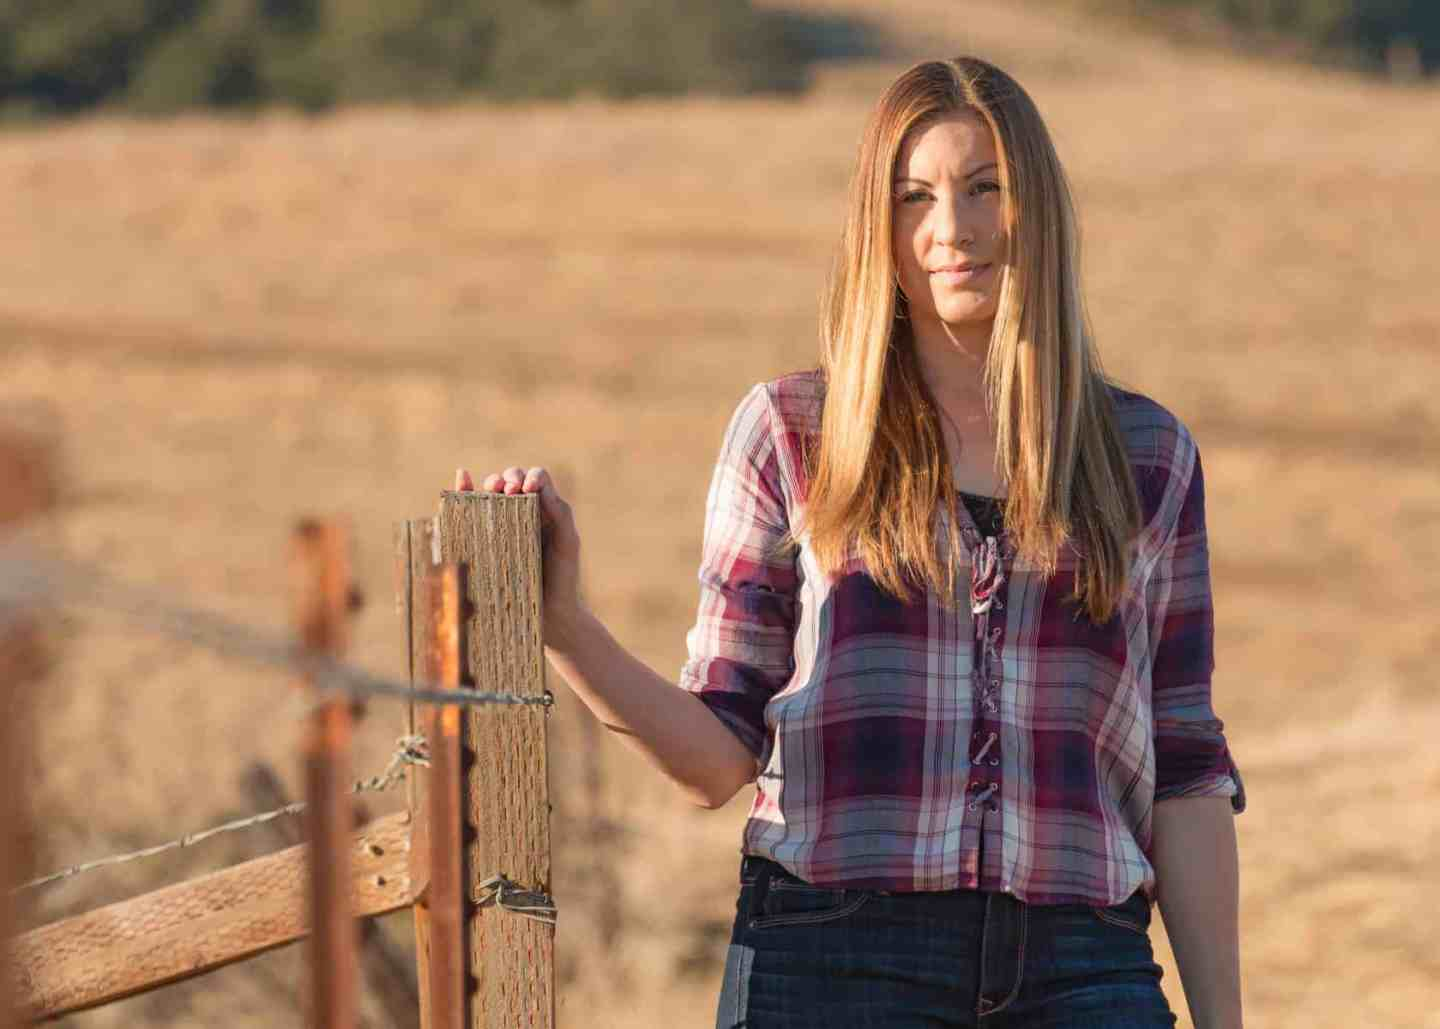 Perfect Plaid Lace-Up Shirt for Warm Fall California Weather